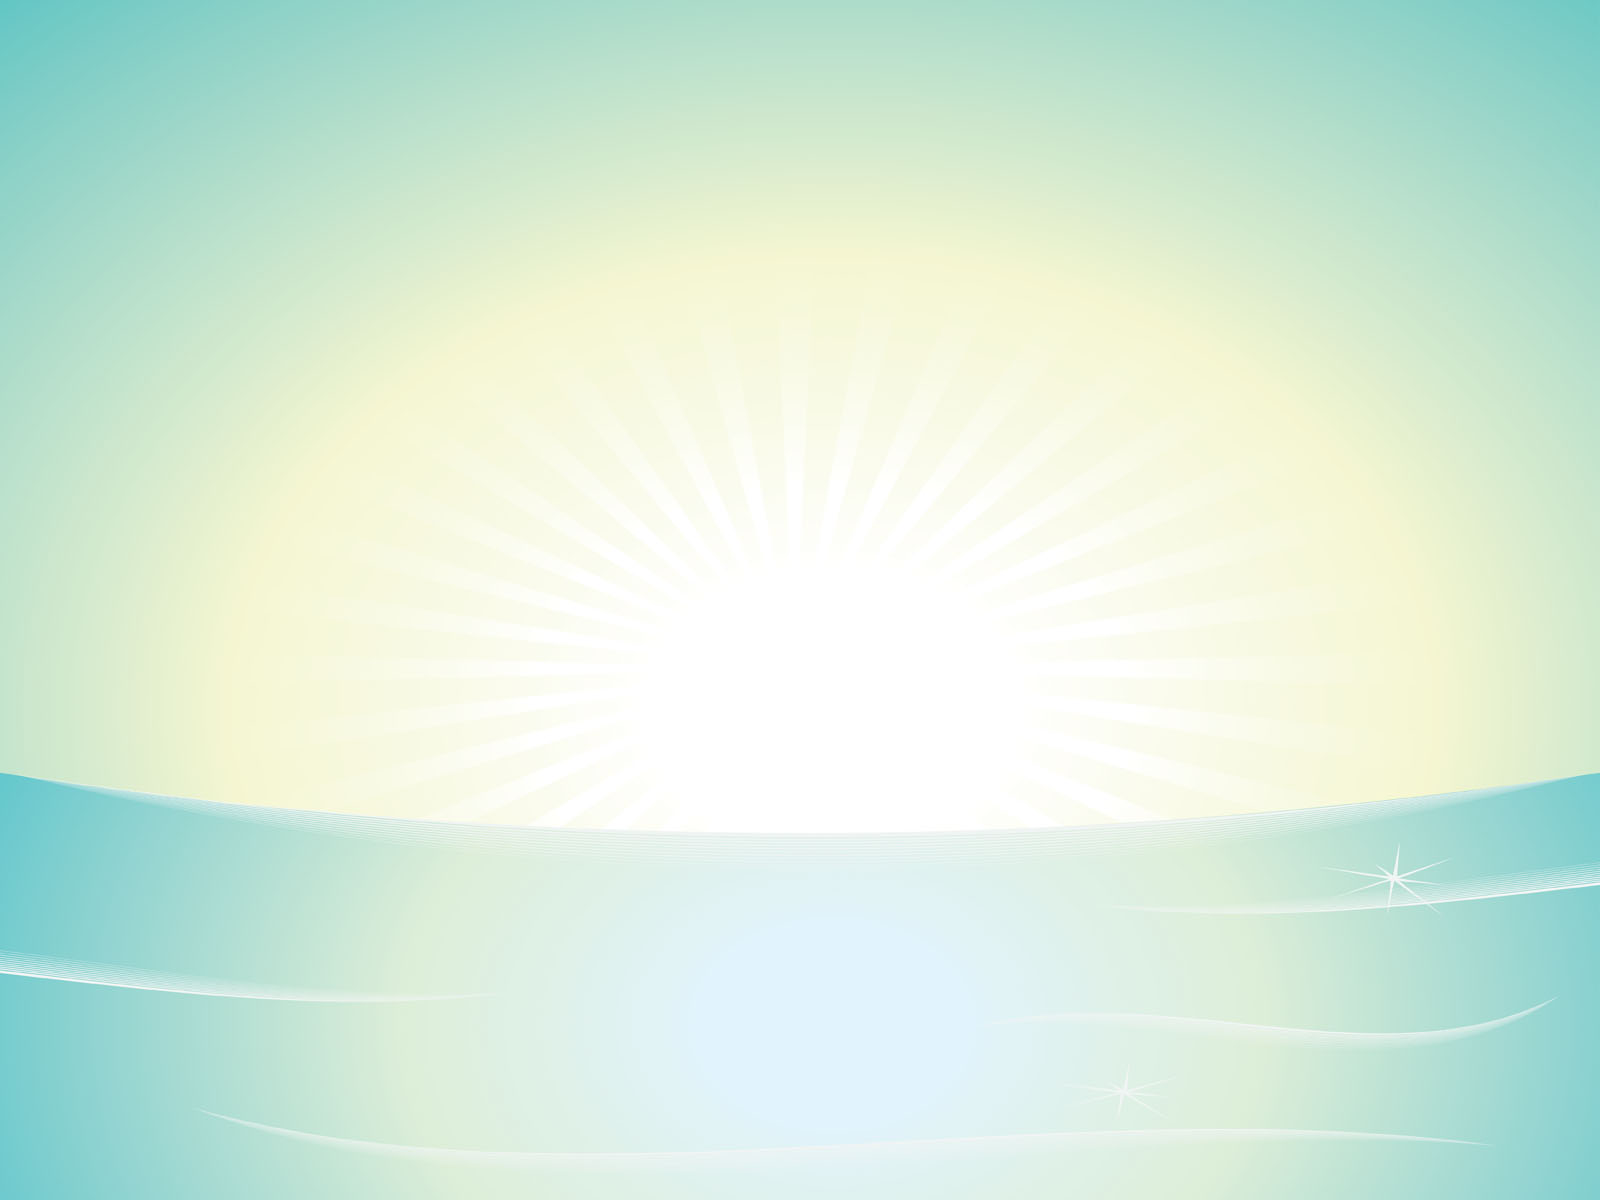 2998 Light Sunshine Design Backgrounds on Black Brown Border